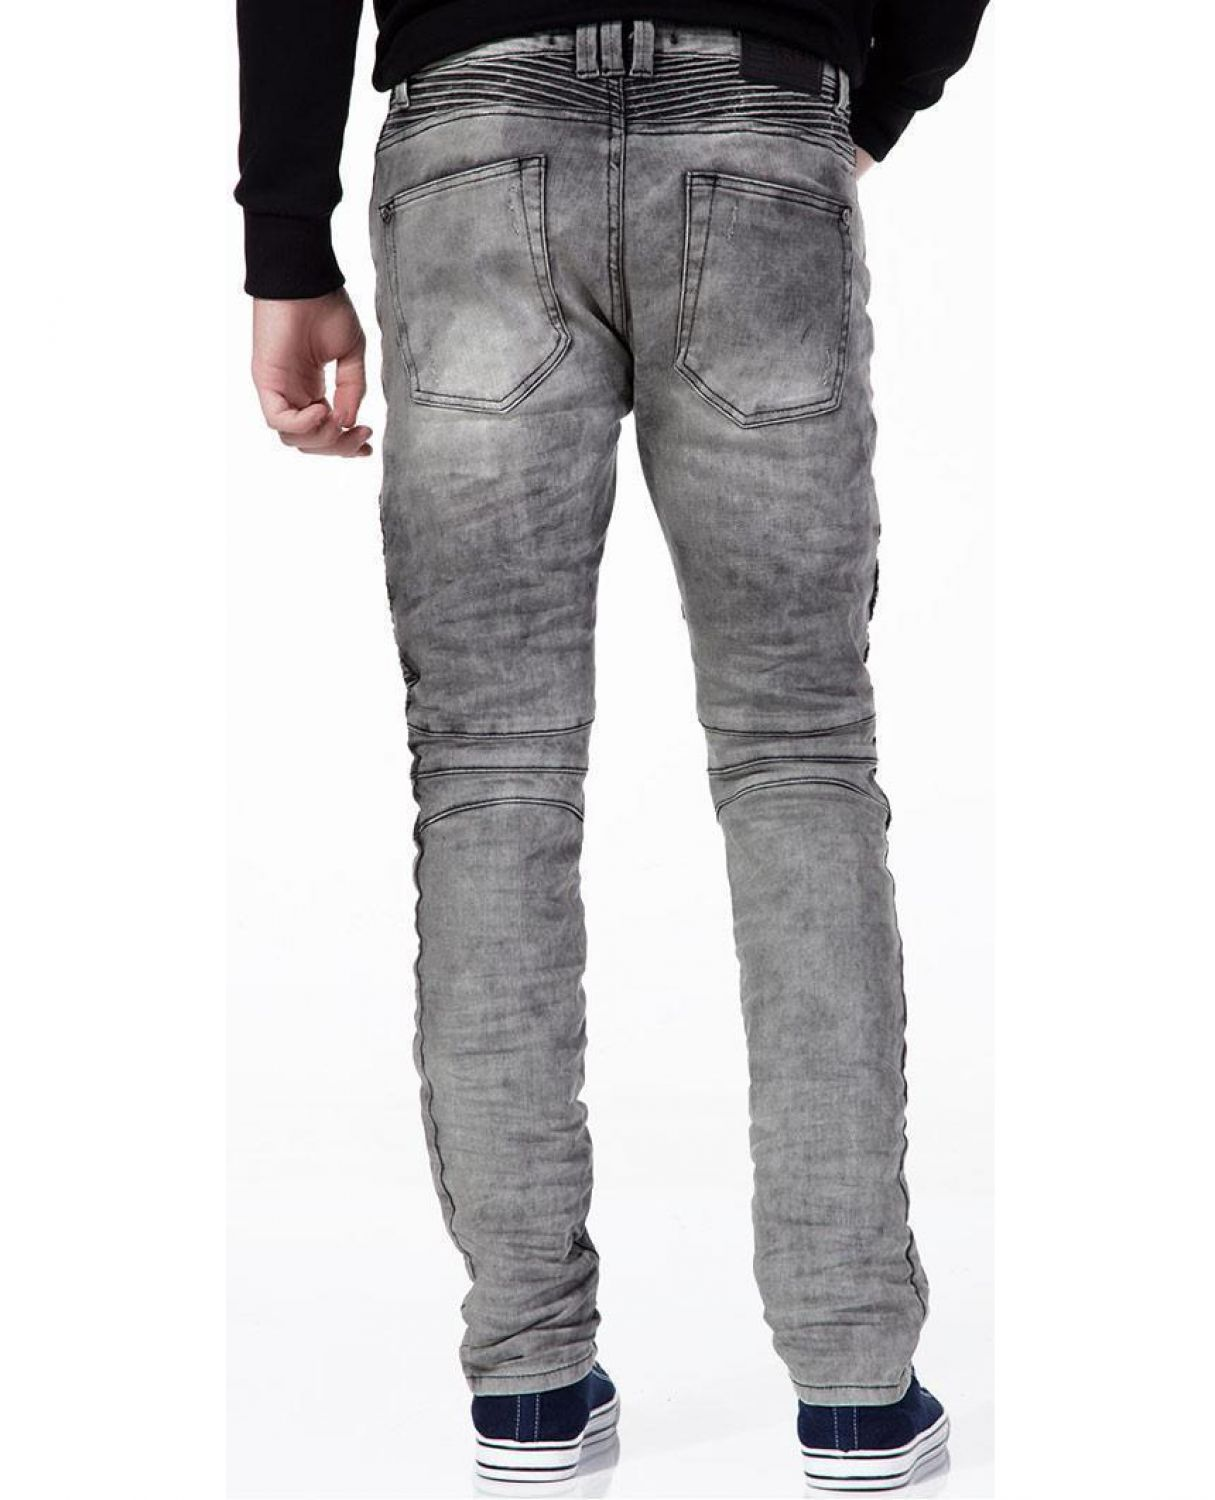 M4039-grey Red Bridge men's biker skinny tube denim jeans pants denim grey